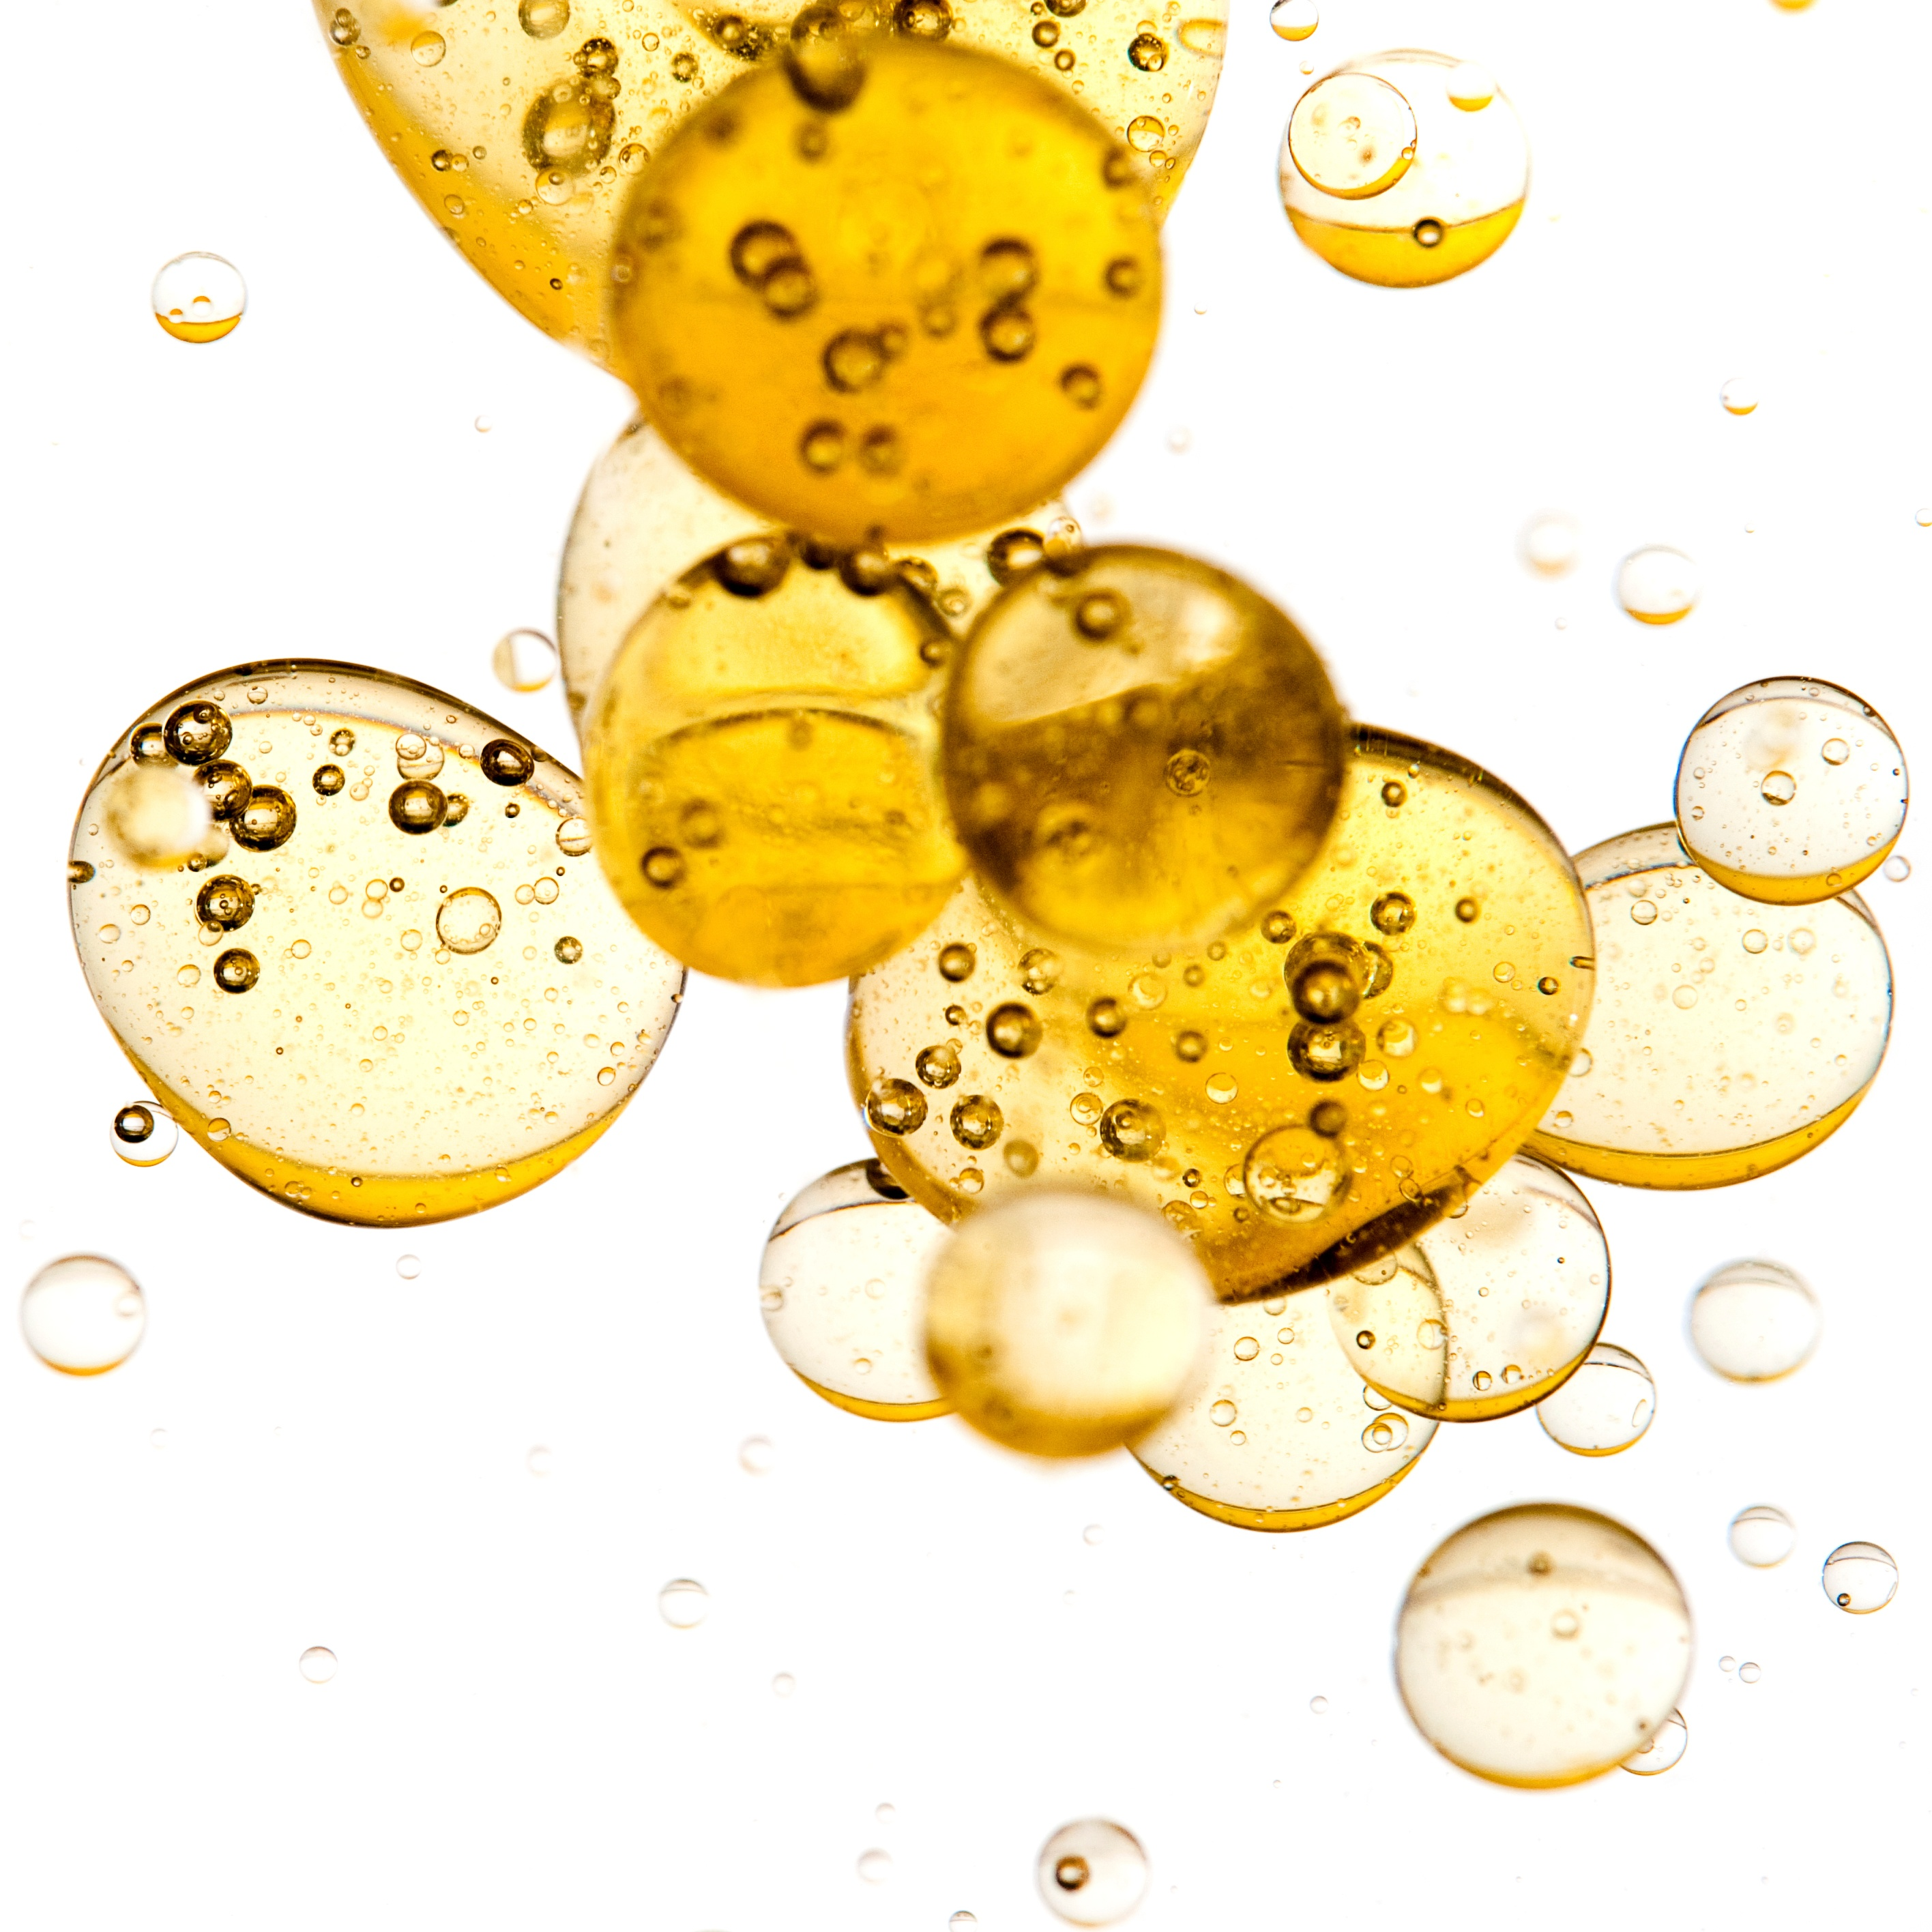 5 Methods for Measuring Water in Lubrication Oil